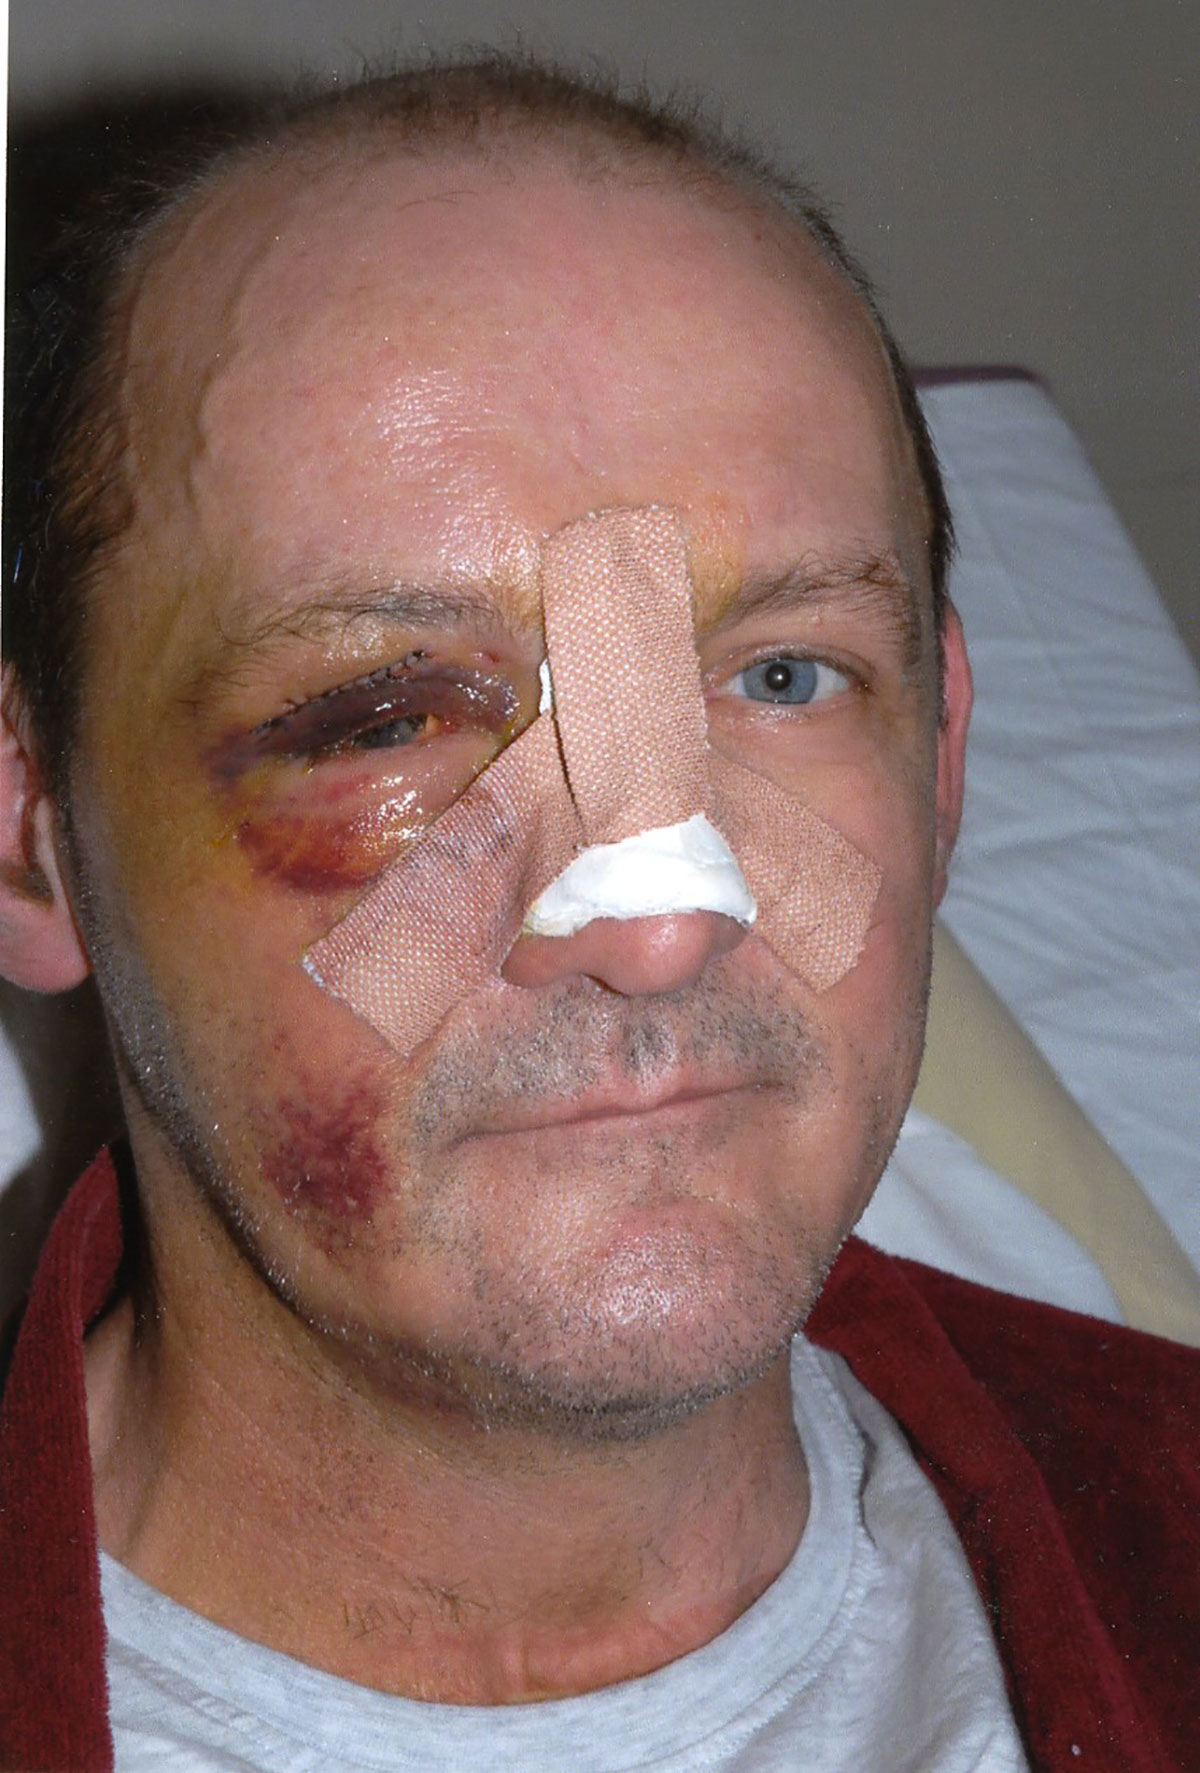 Judge slams 'unbelievable' charge against teen attacker who left victim without eye